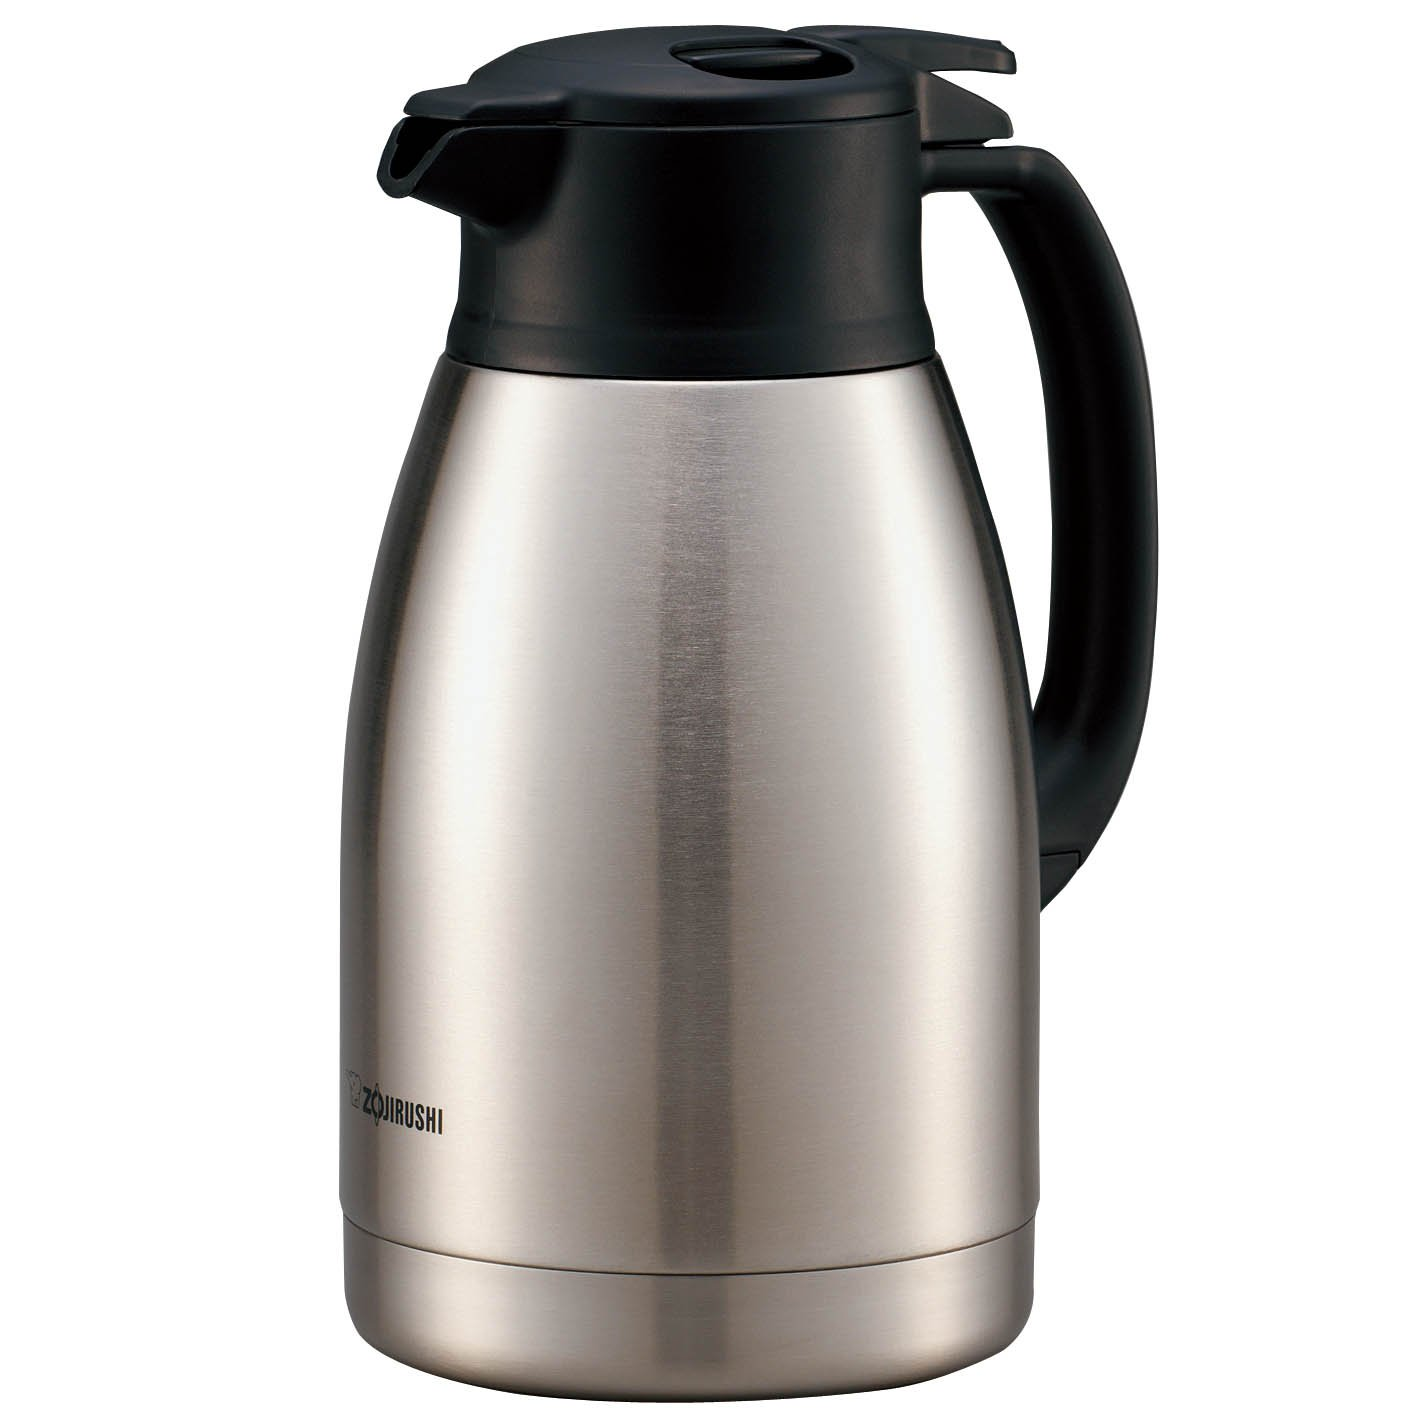 Zojirushi Stainless Steel Pot 1.5l Stainless Sh-ha15-xa